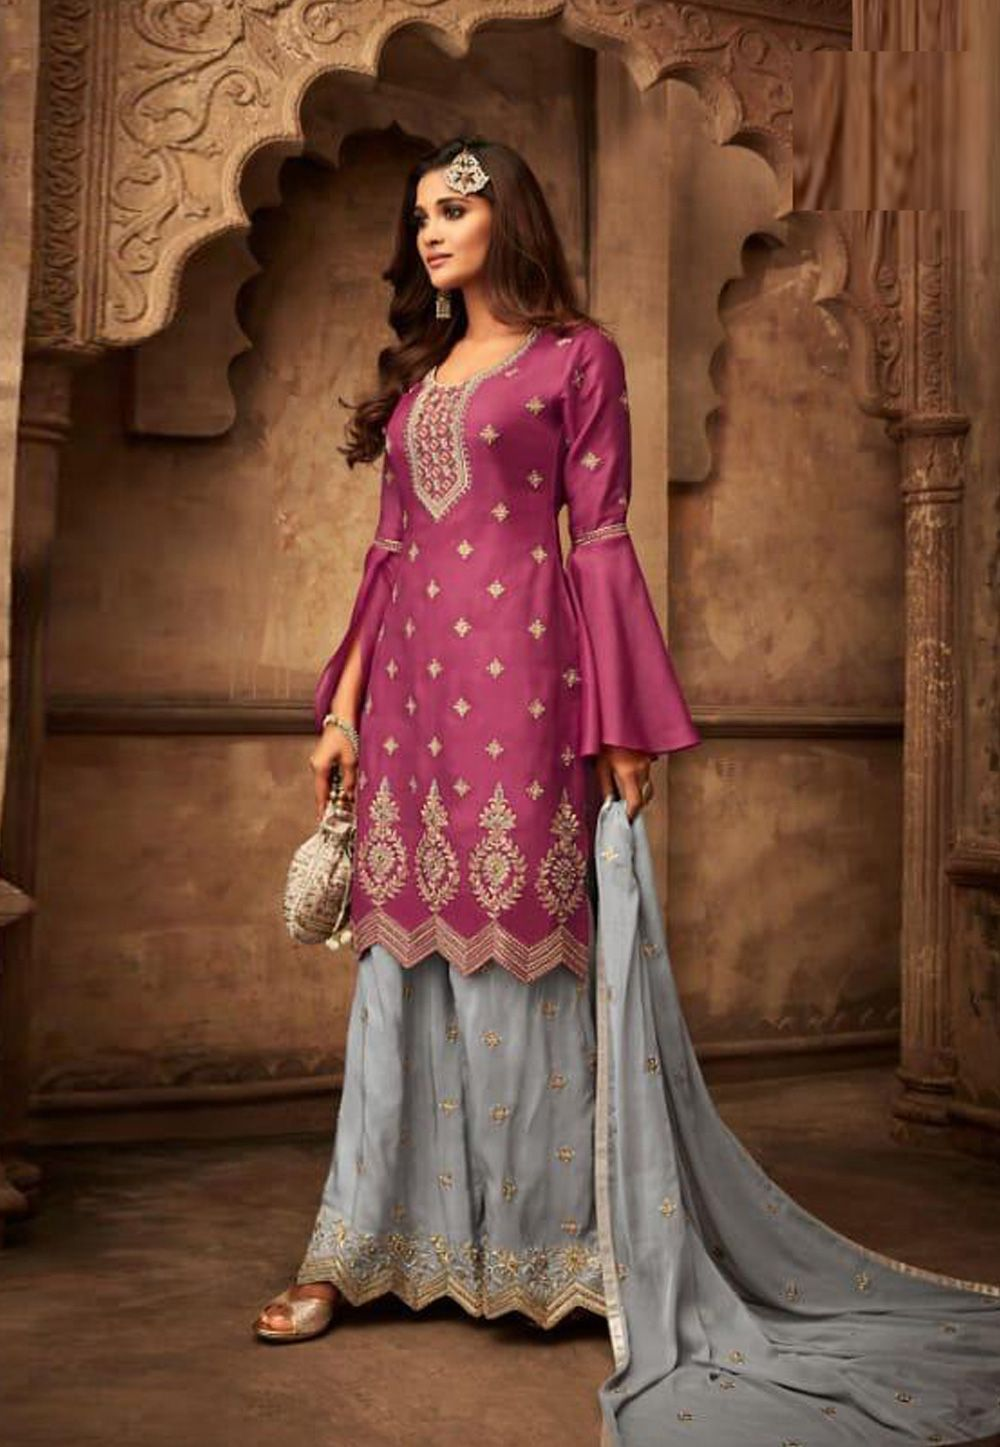 400ceddc444 Buy Magenta Silk Pakistani Style Suit 161730 online at lowest price from  huge collection of salwar kameez at Indianclothstore.com.